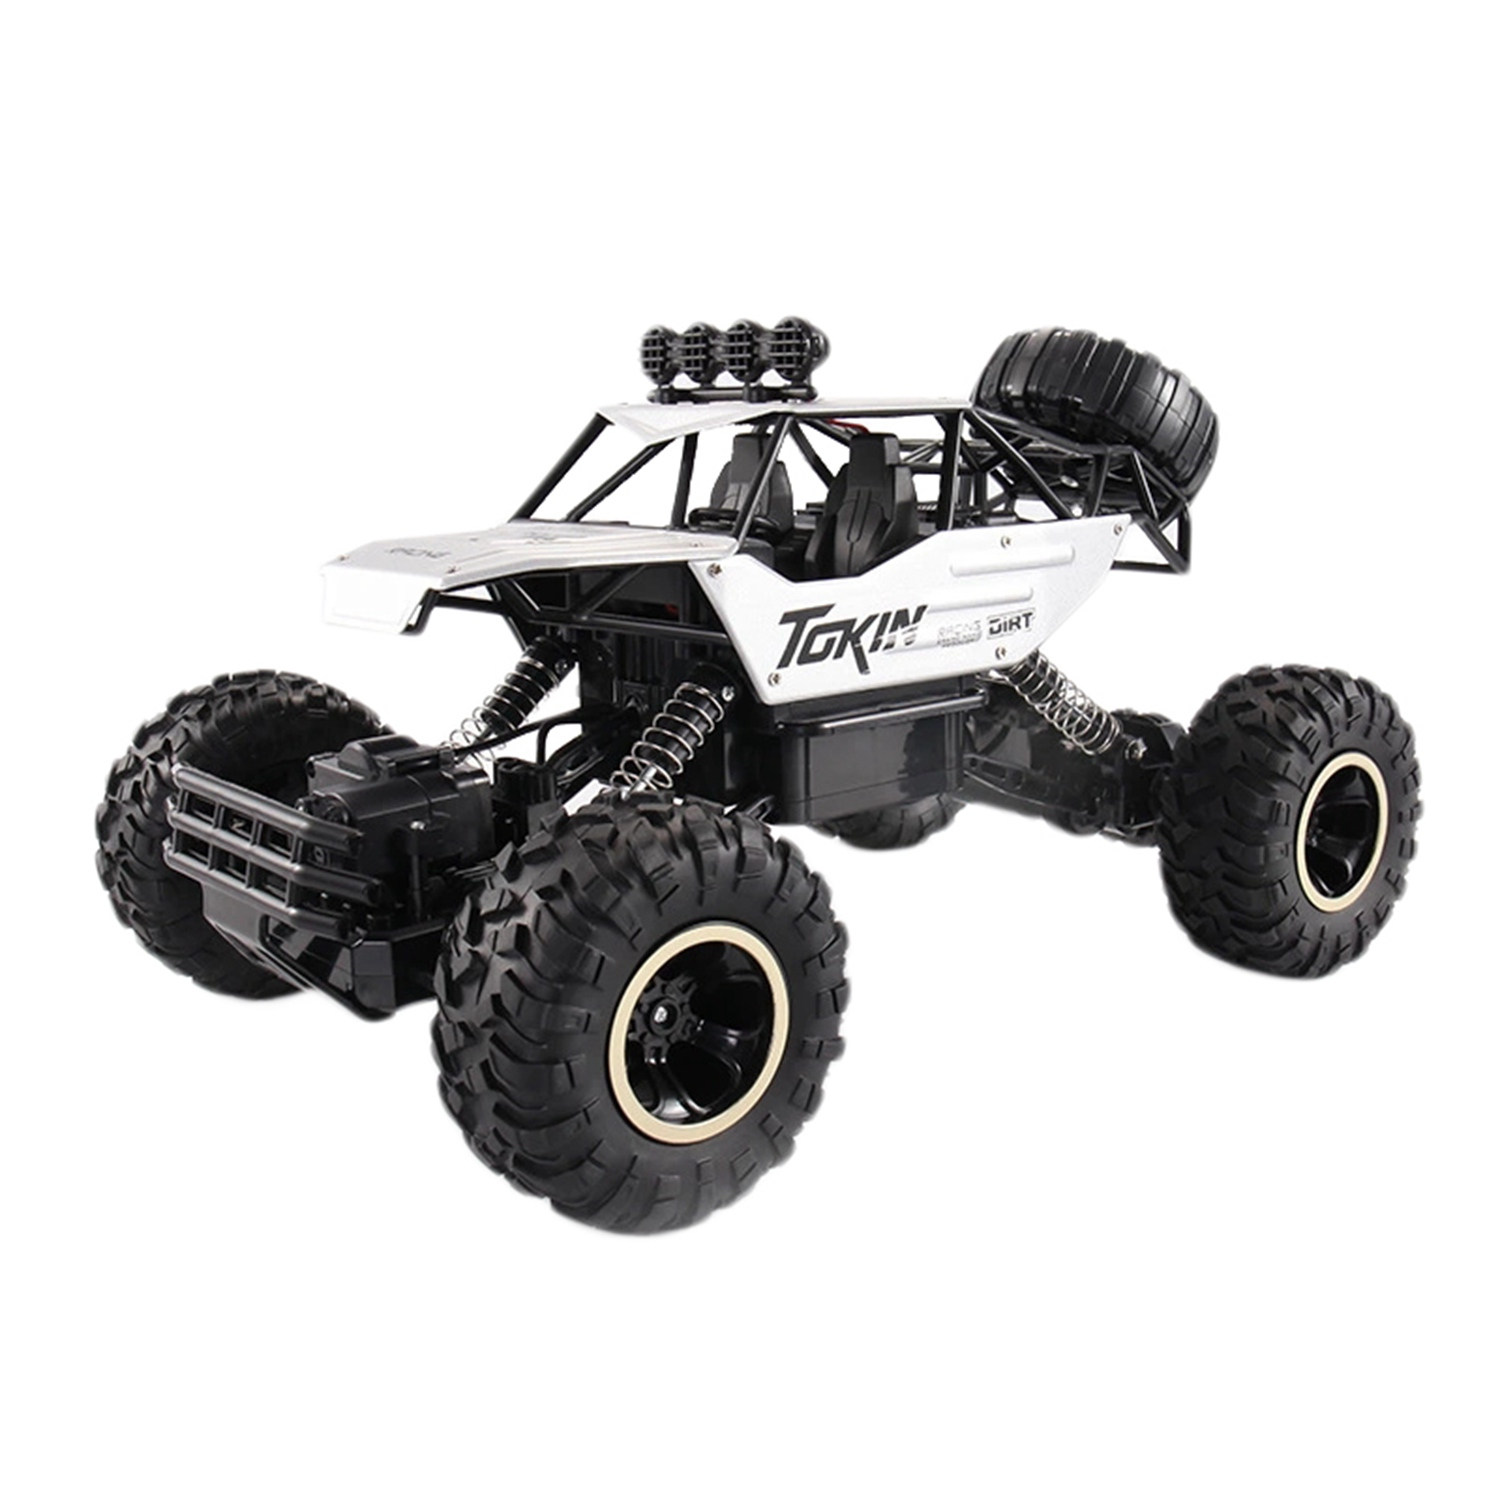 1/12 Rc Car 4Wd Climbing Car Double Motors Drive Bigfoot Car Remote Control Model Off-Road Vehicle Toys For Boys Kids1/12 Rc Car 4Wd Climbing Car Double Motors Drive Bigfoot Car Remote Control Model Off-Road Vehicle Toys For Boys Kids